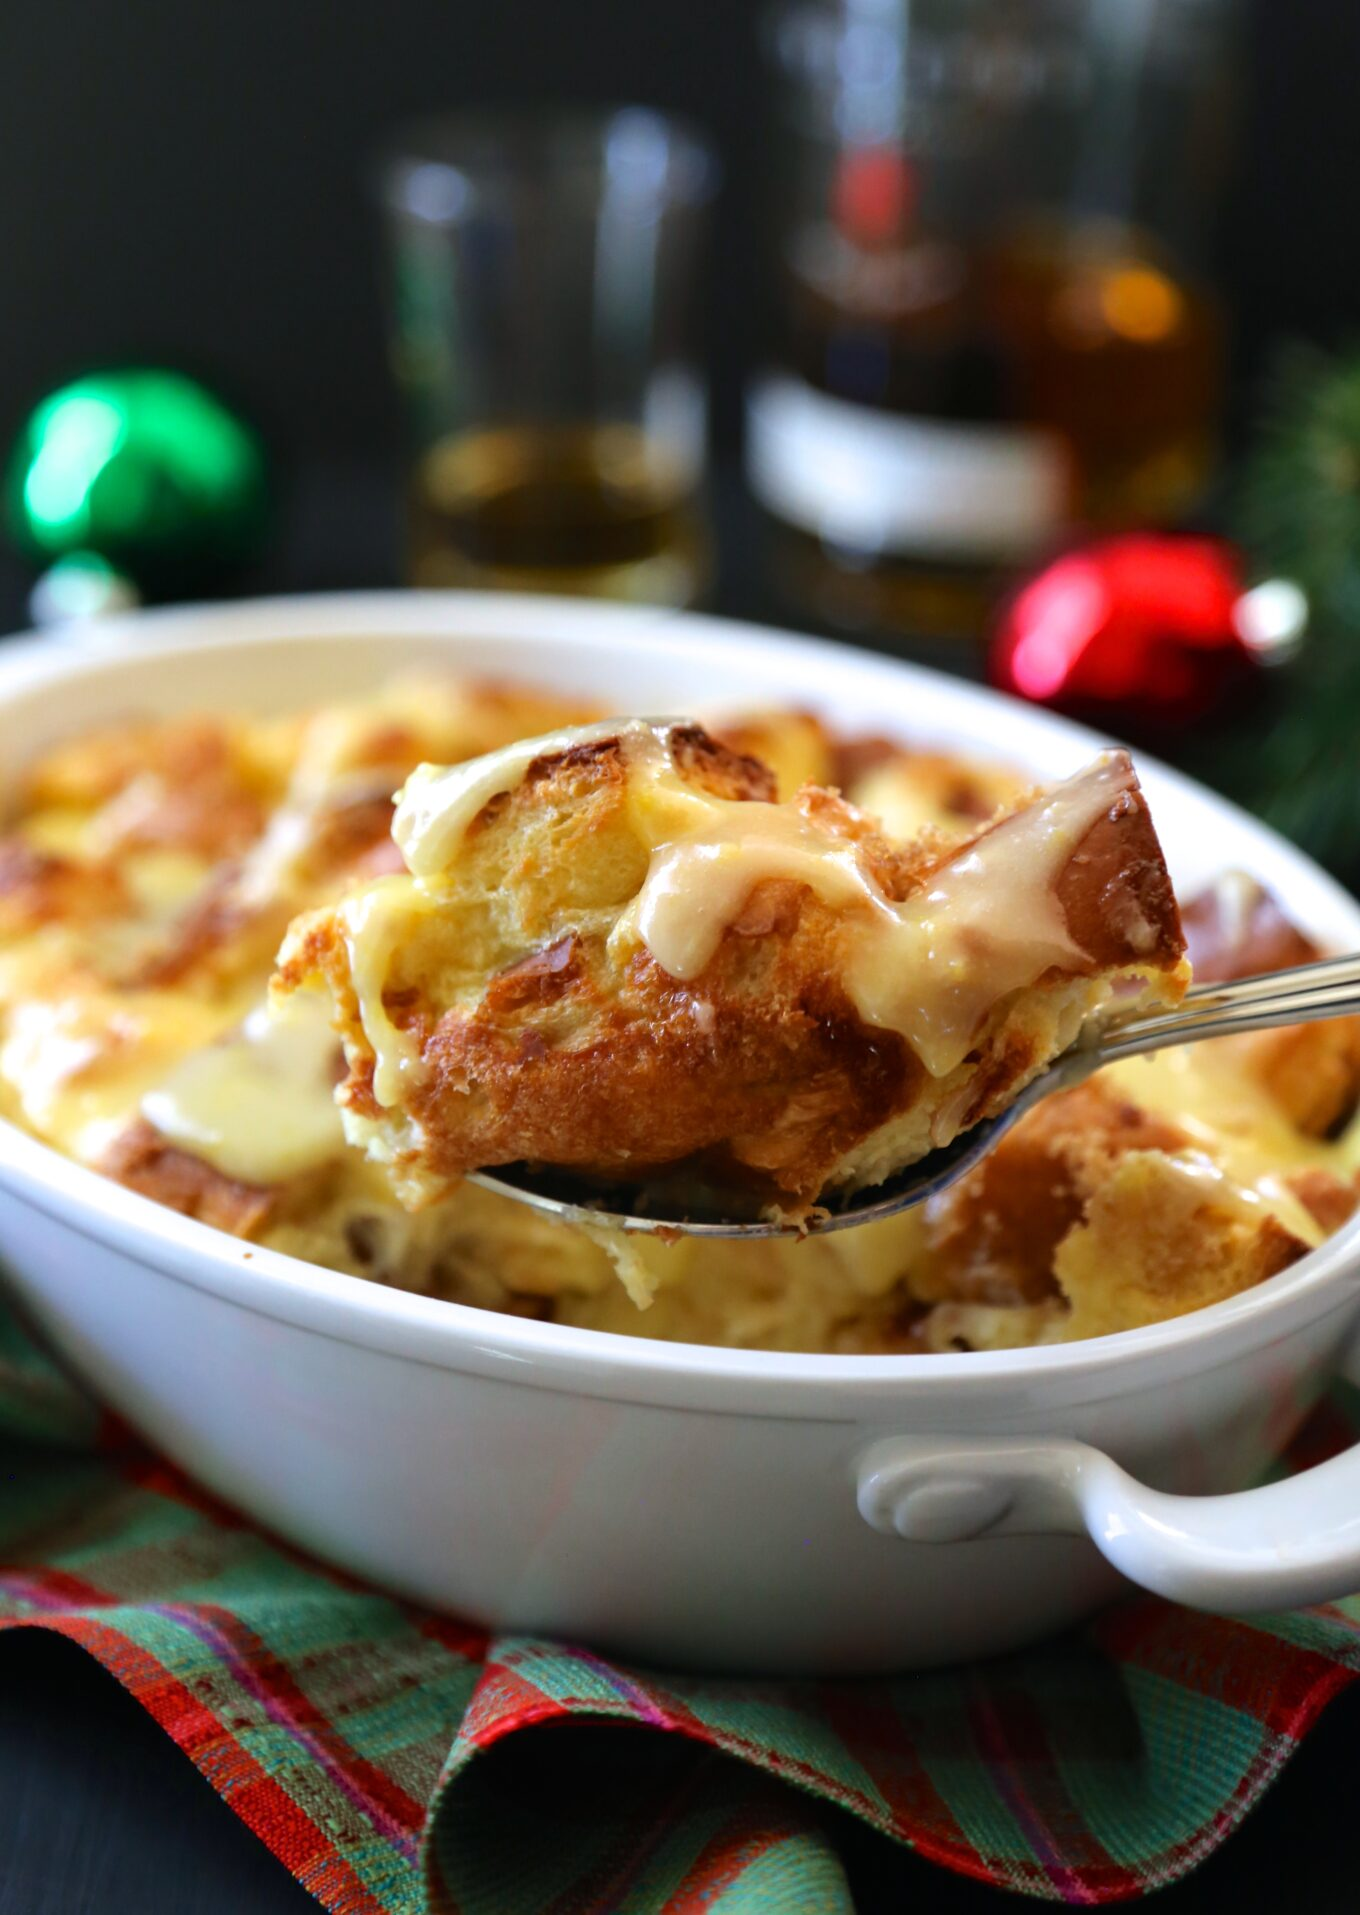 Old fashioned bread pudding with whiskey sauce